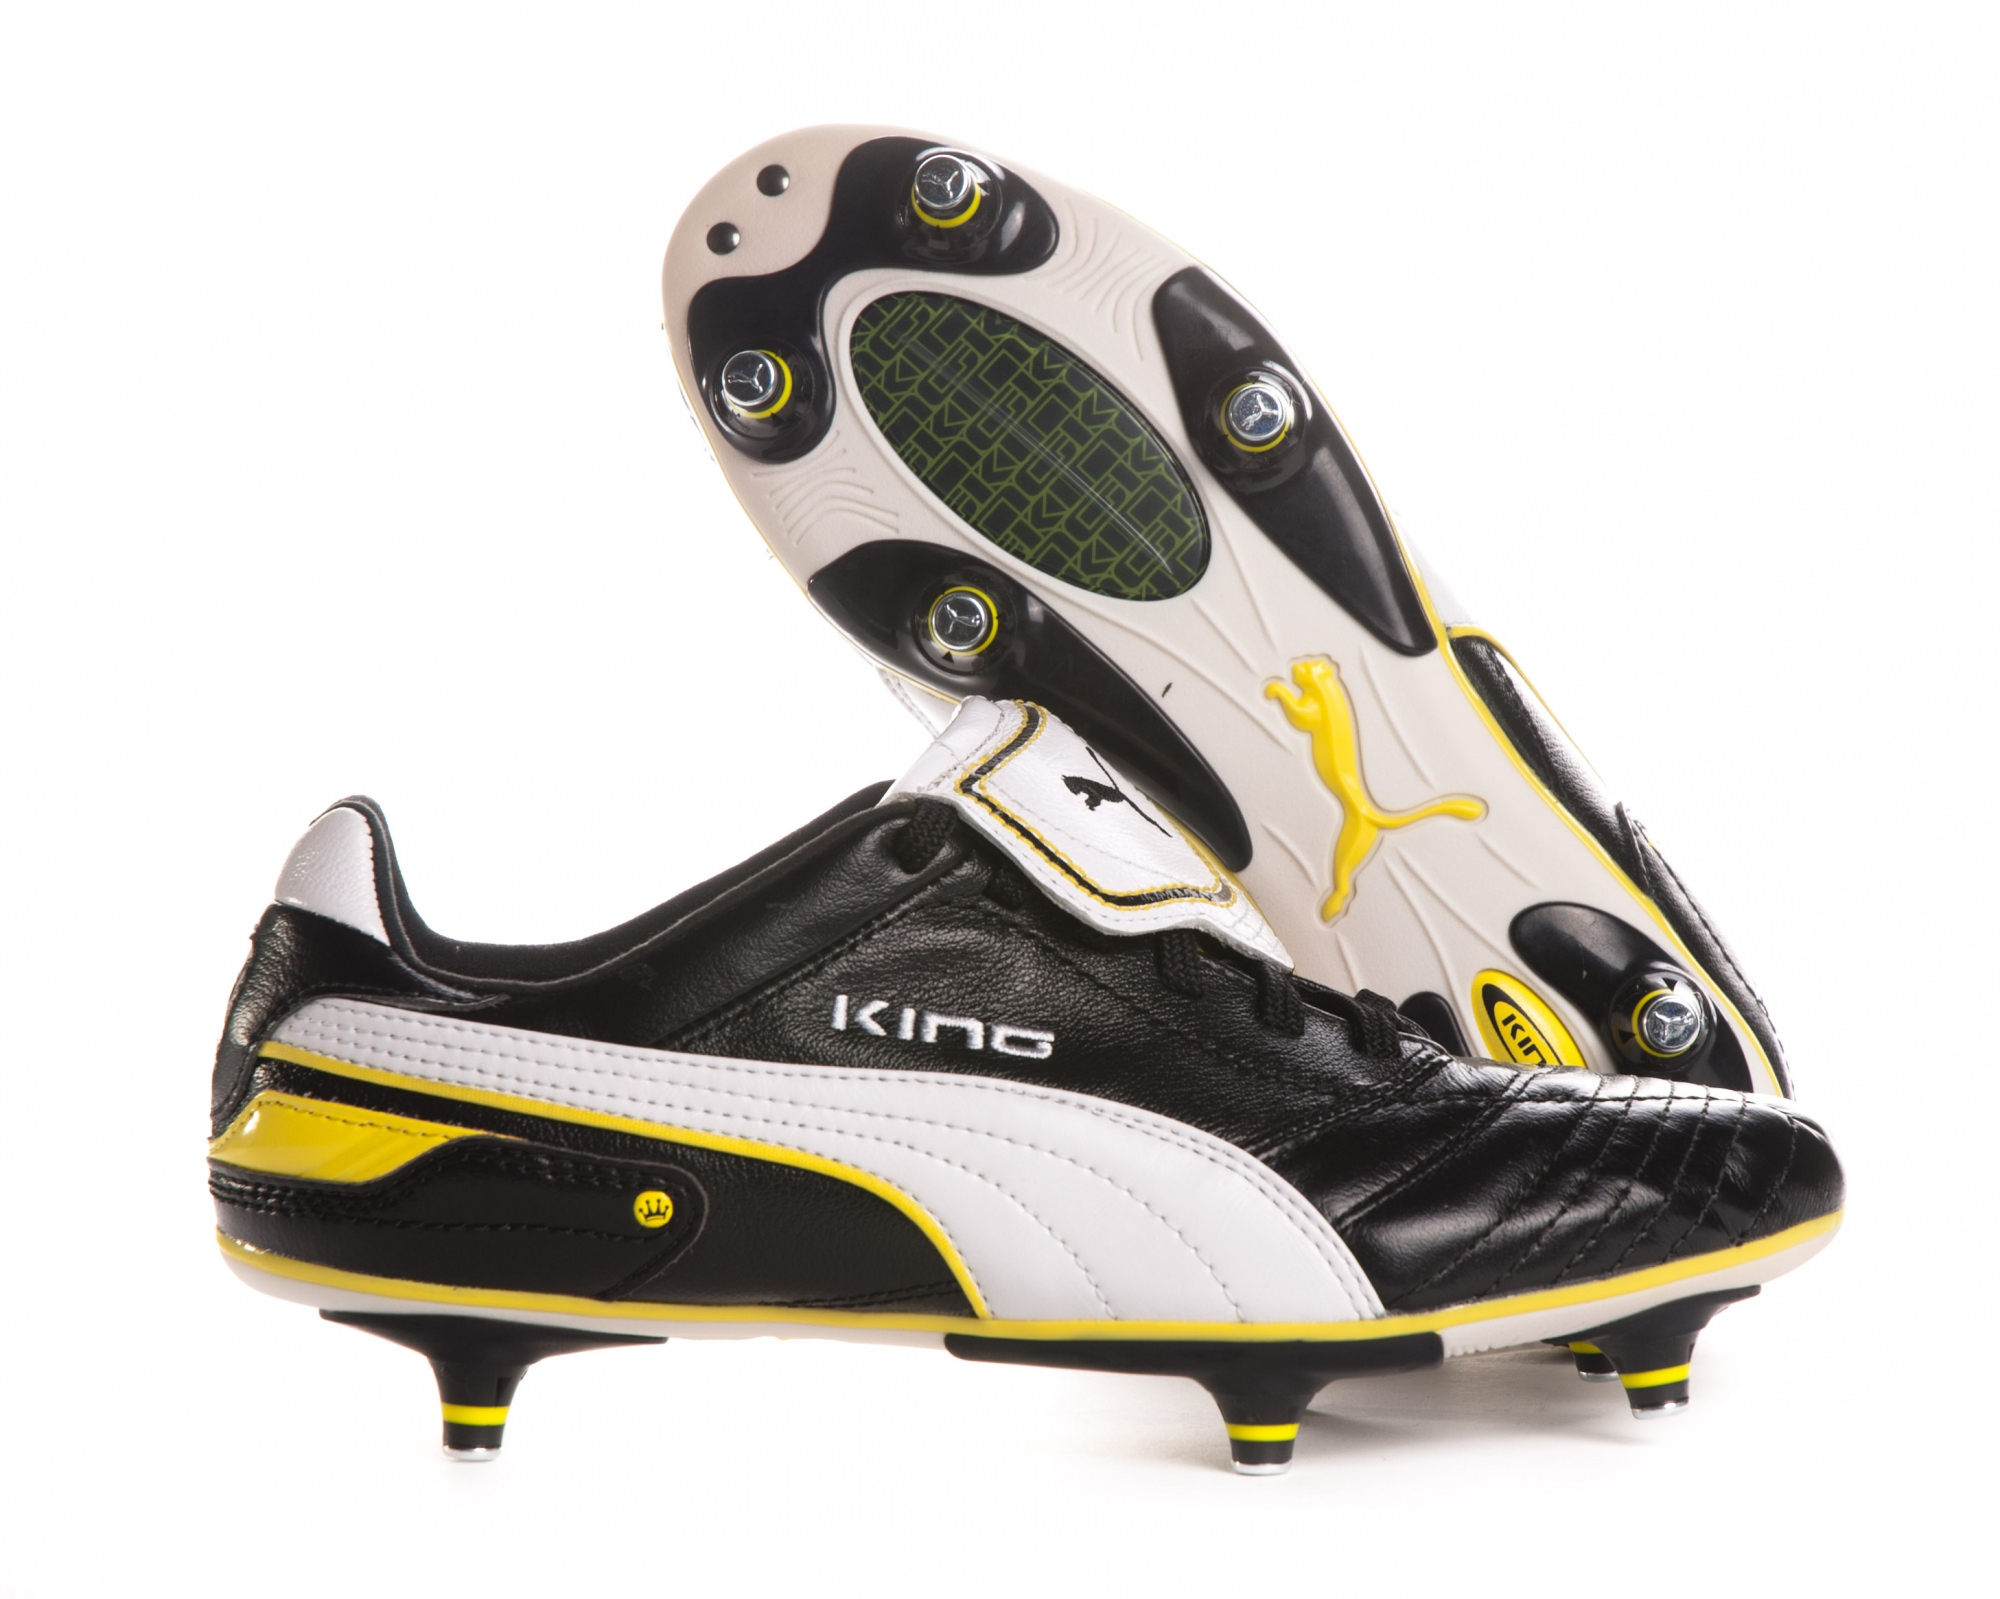 Puma King Finale Soccer Shoes